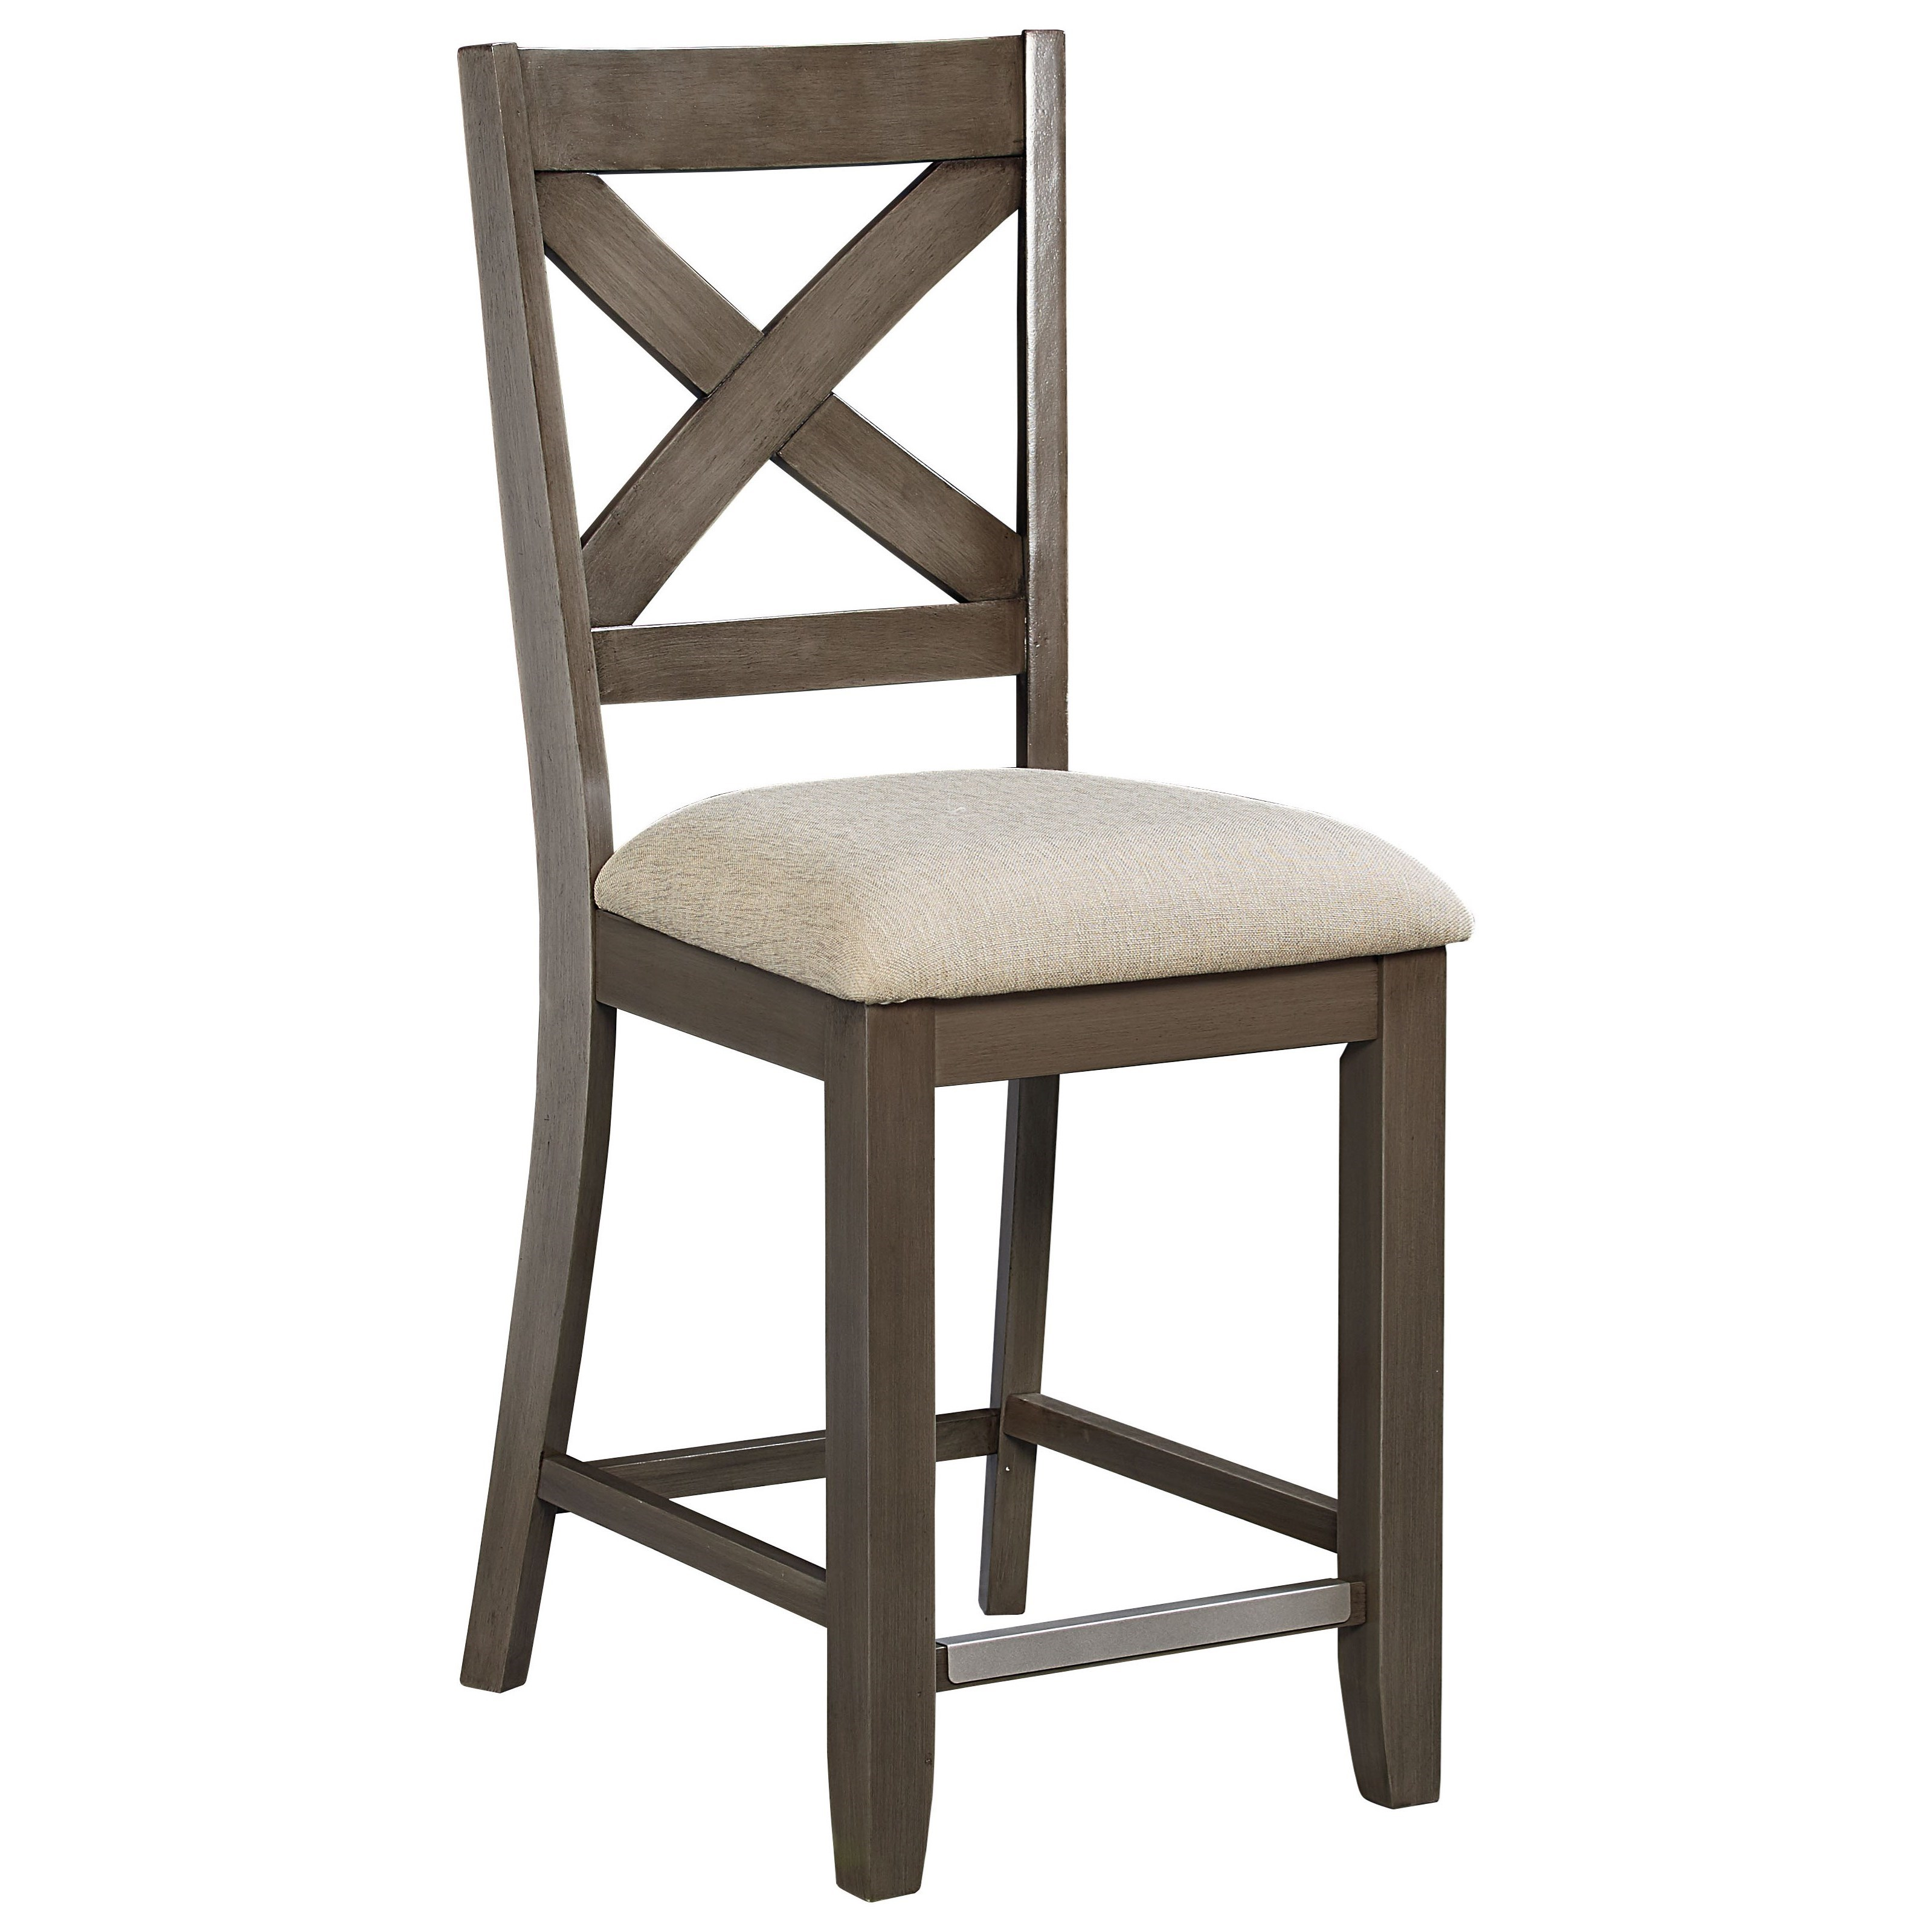 Counter Height Bar Stool With X Back By Standard Furniture